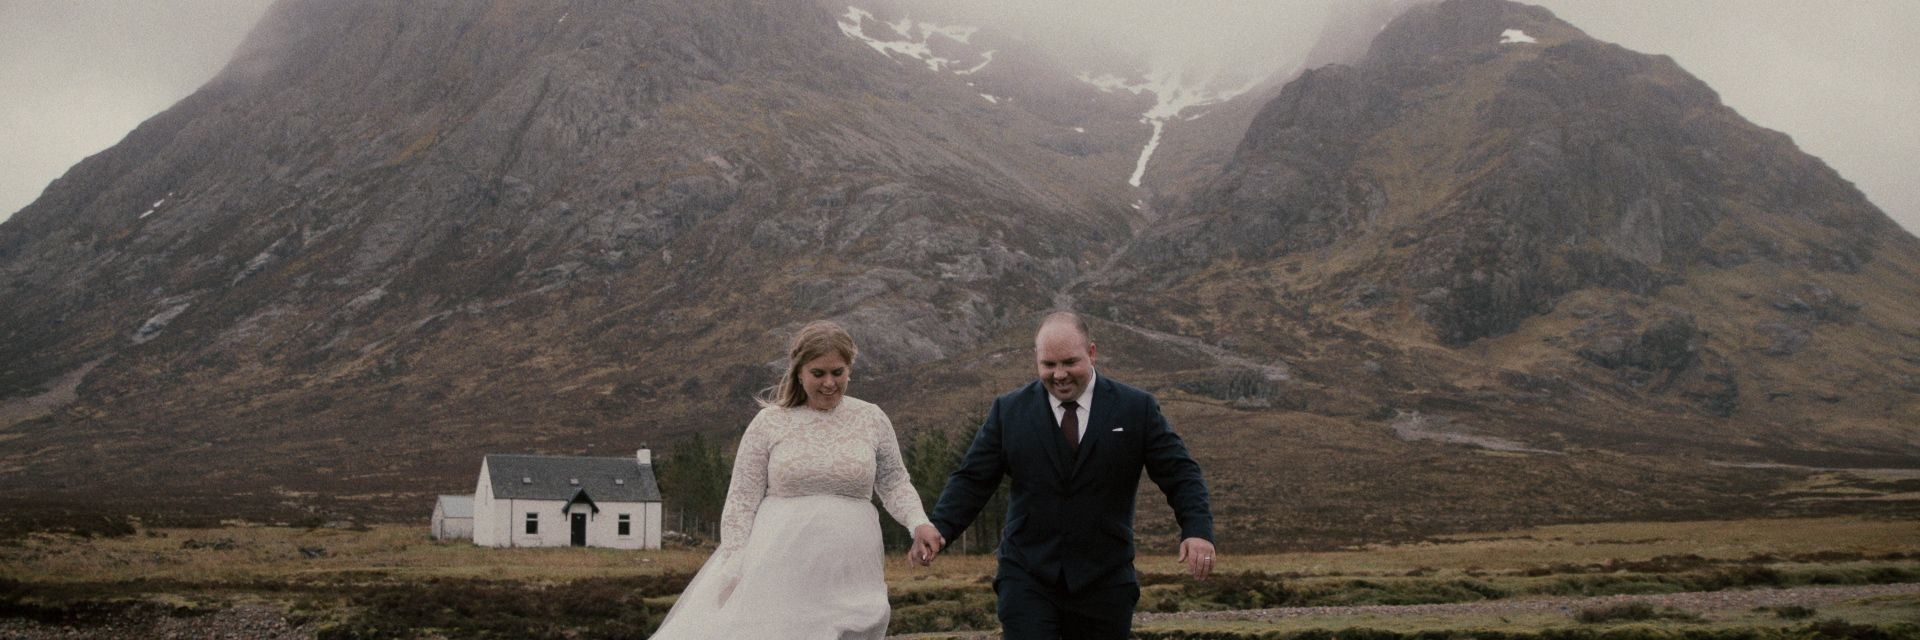 Glencoe-wedding-videographer-cinemate-films-03